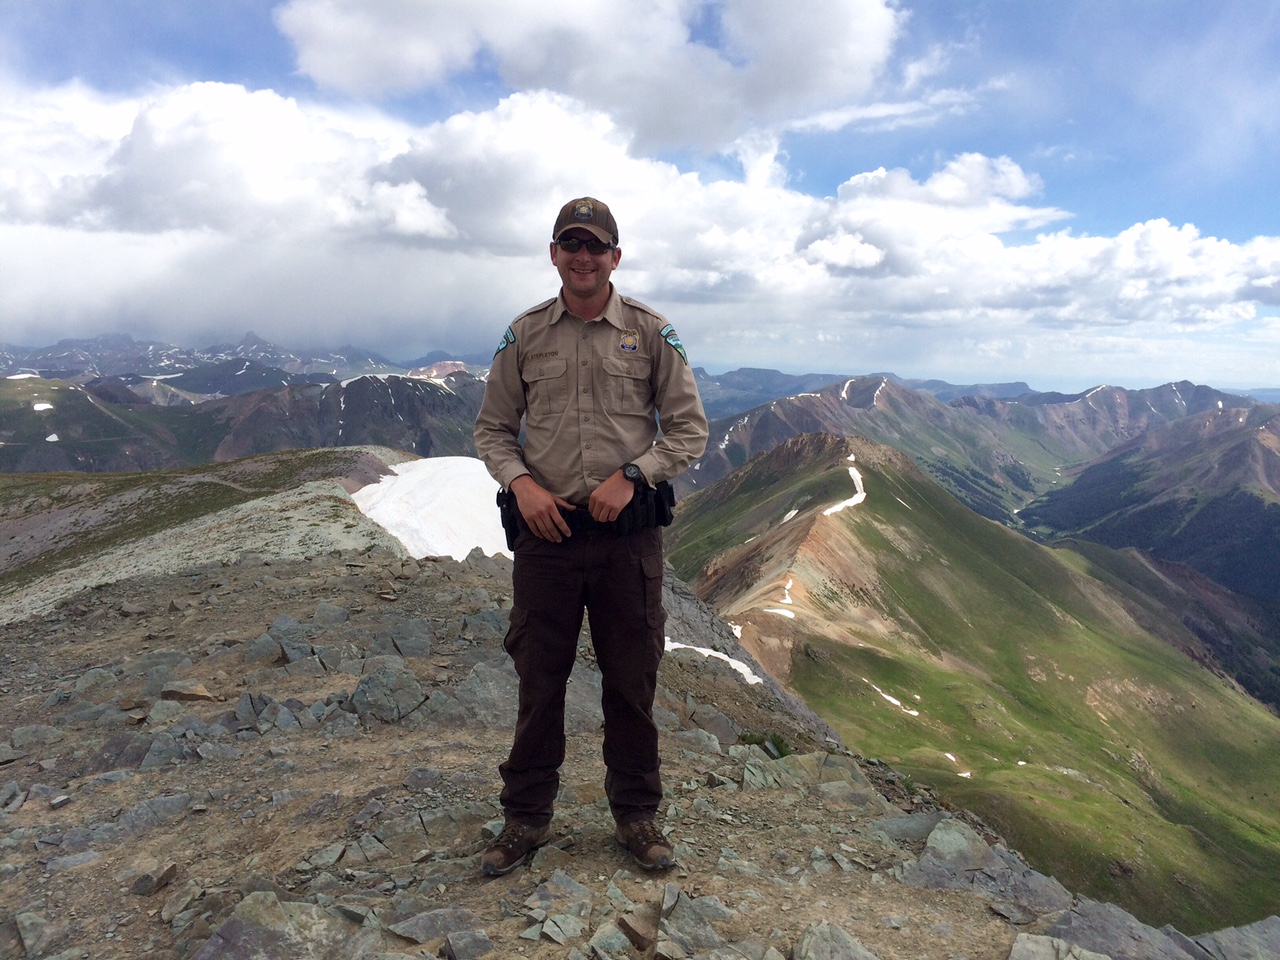 BLM Ranger, Frank Stepleton is the Bureau of Land Management's 2015 Ranger of the Year!